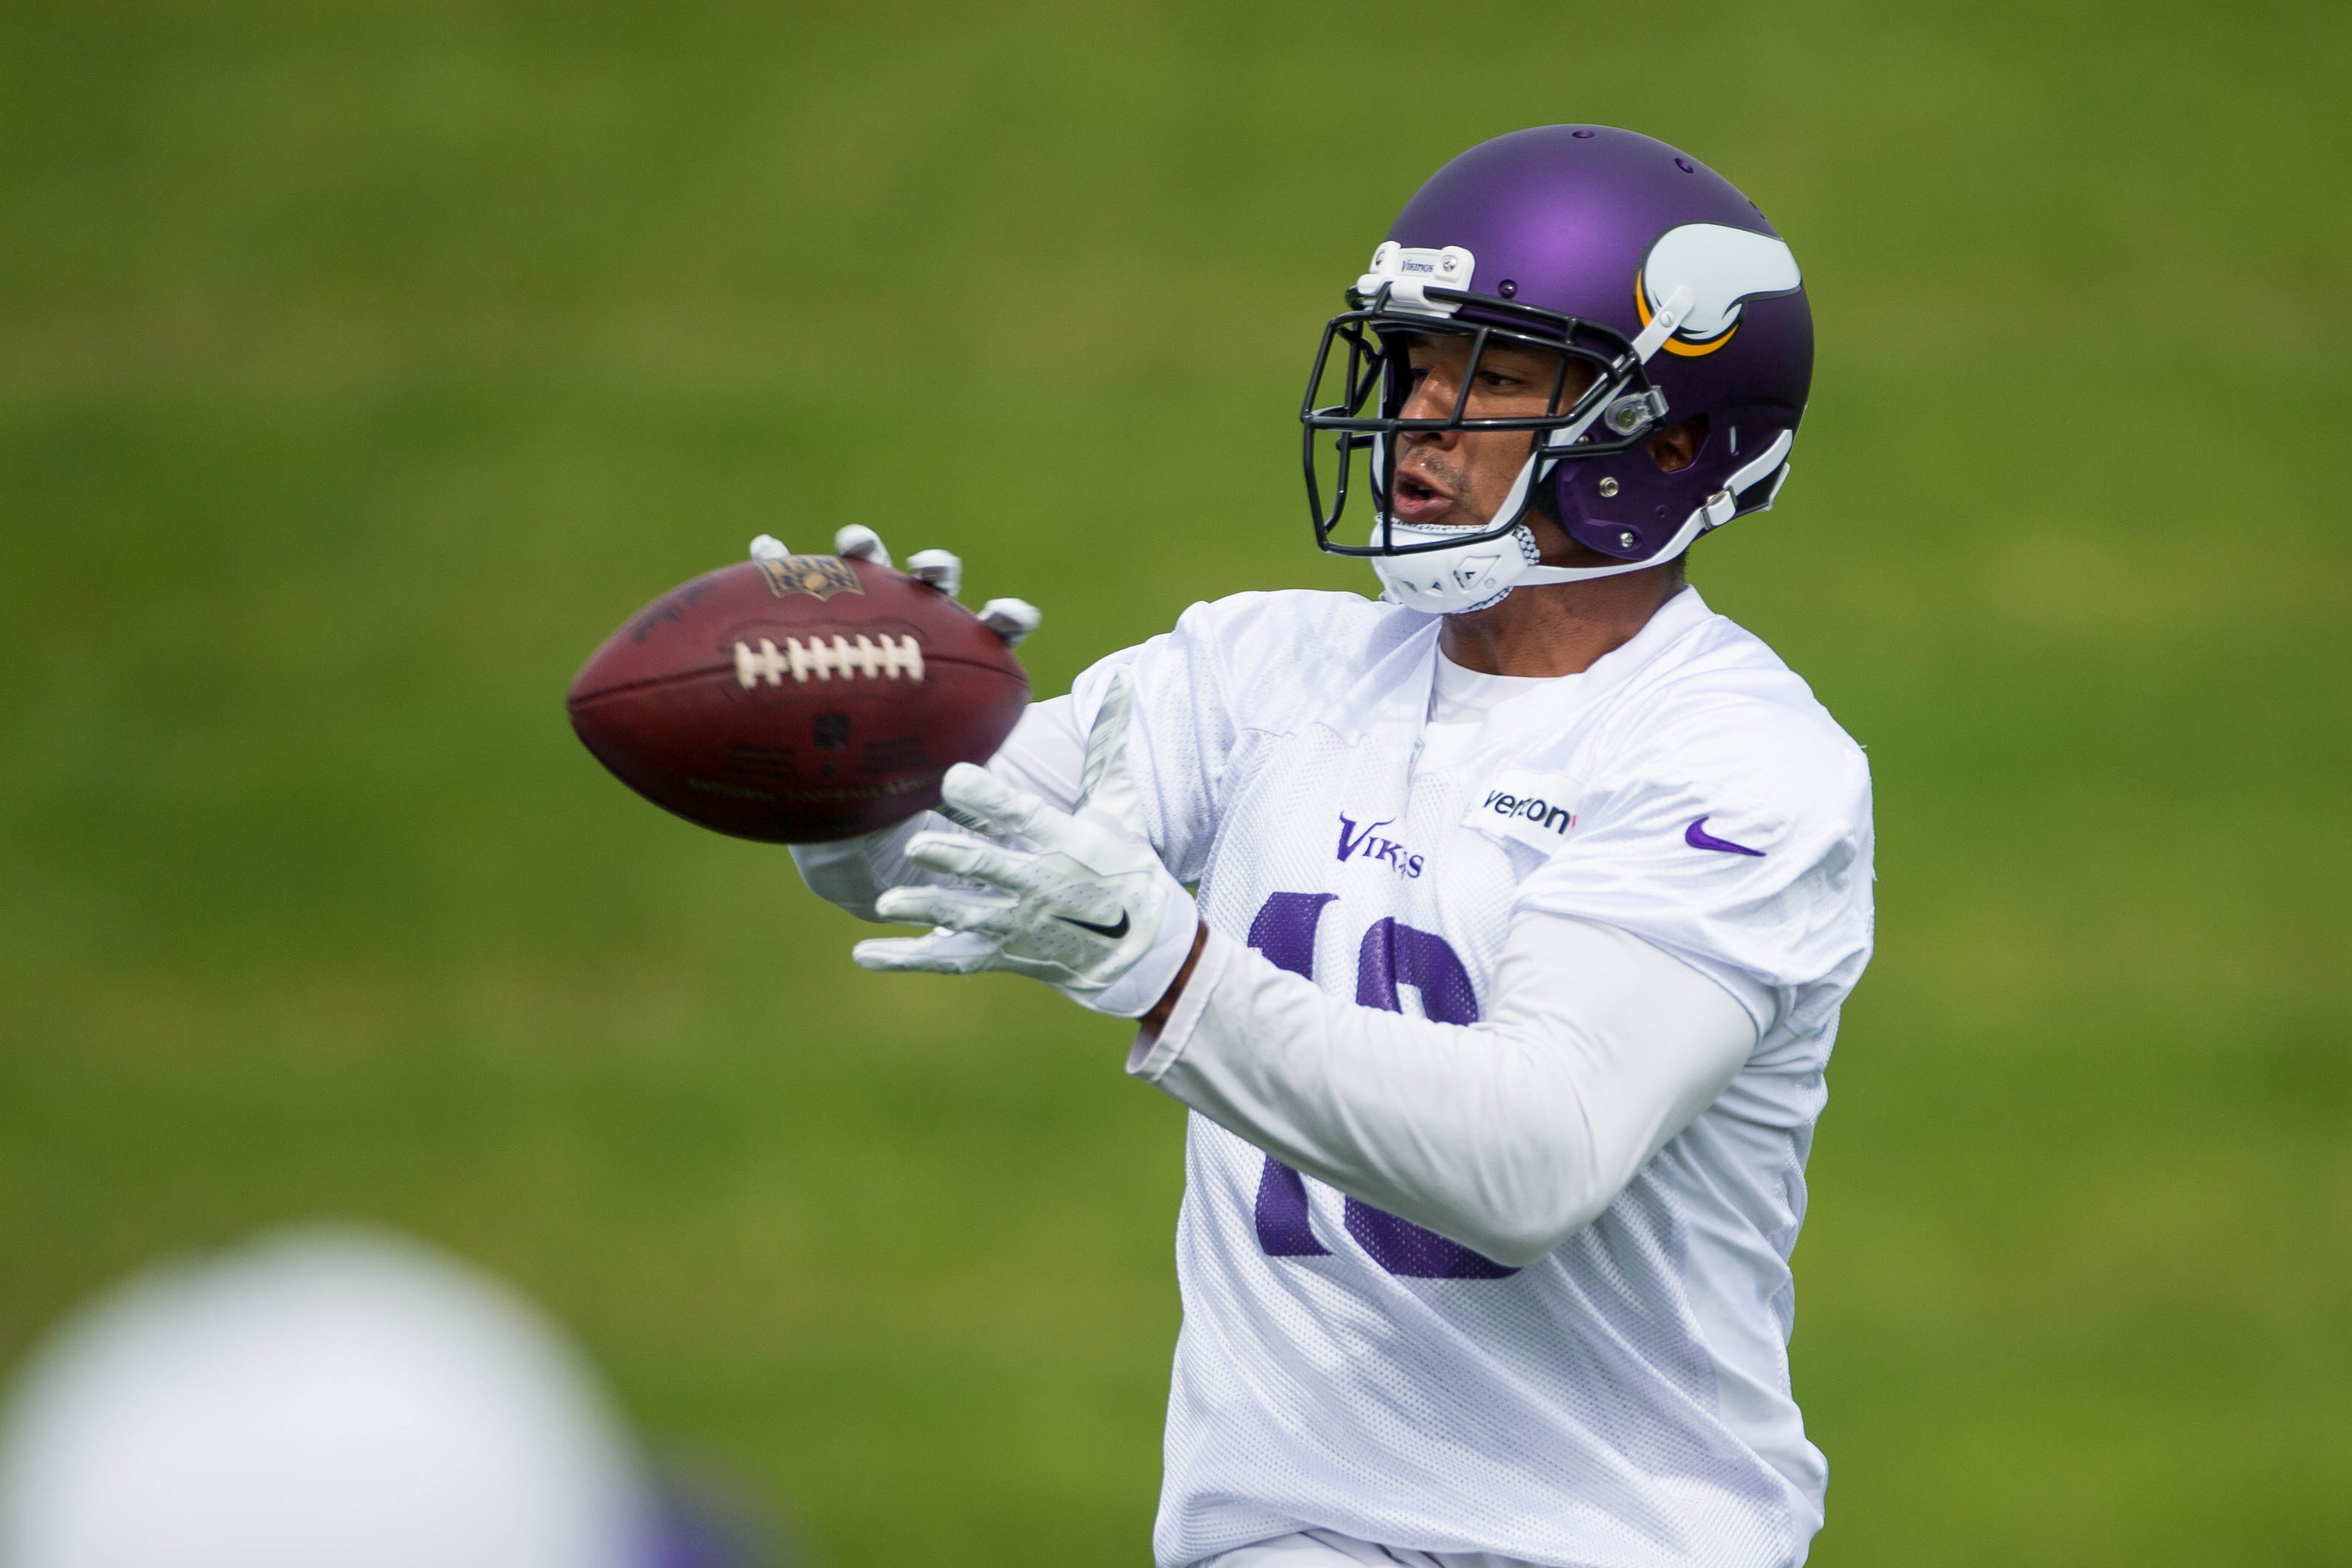 Teddy bridgewater injury update vikings expect qb to miss 2017 too report says sporting news - Teddy Bridgewater Injury Update Vikings Expect Qb To Miss 2017 Too Report Says Sporting News 21